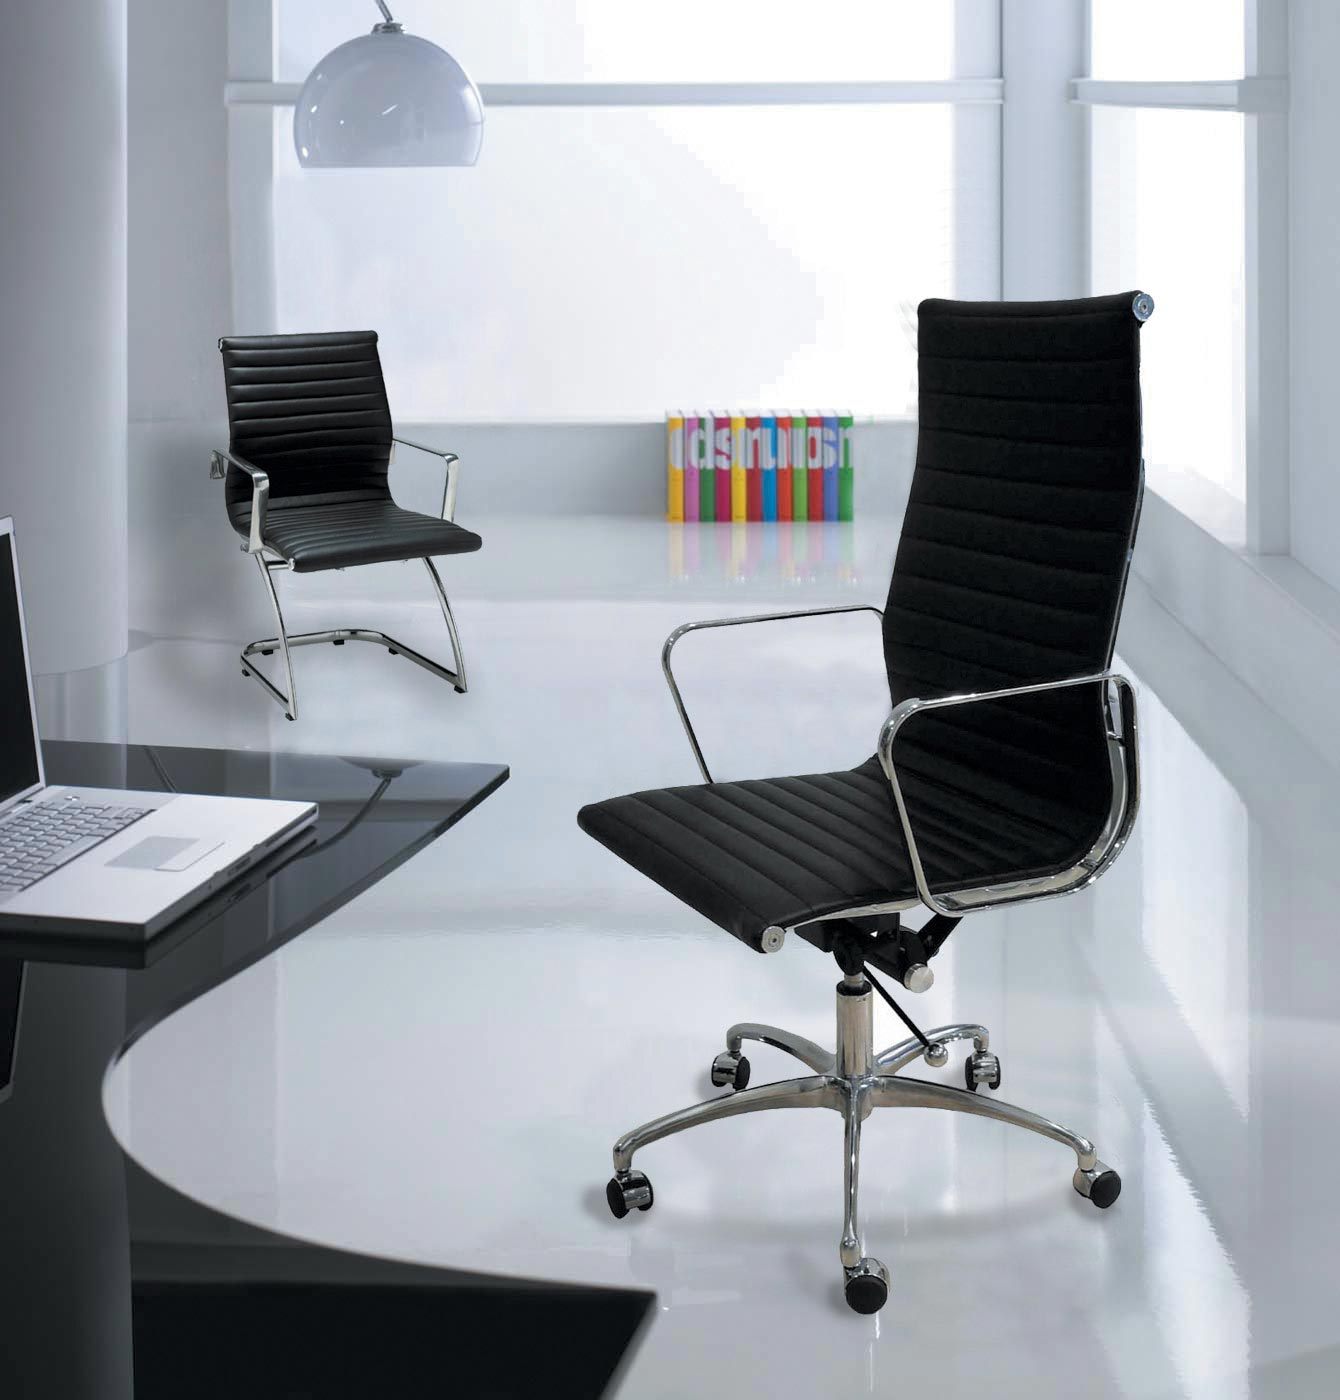 office furniture milton keynes bedford cis interiors